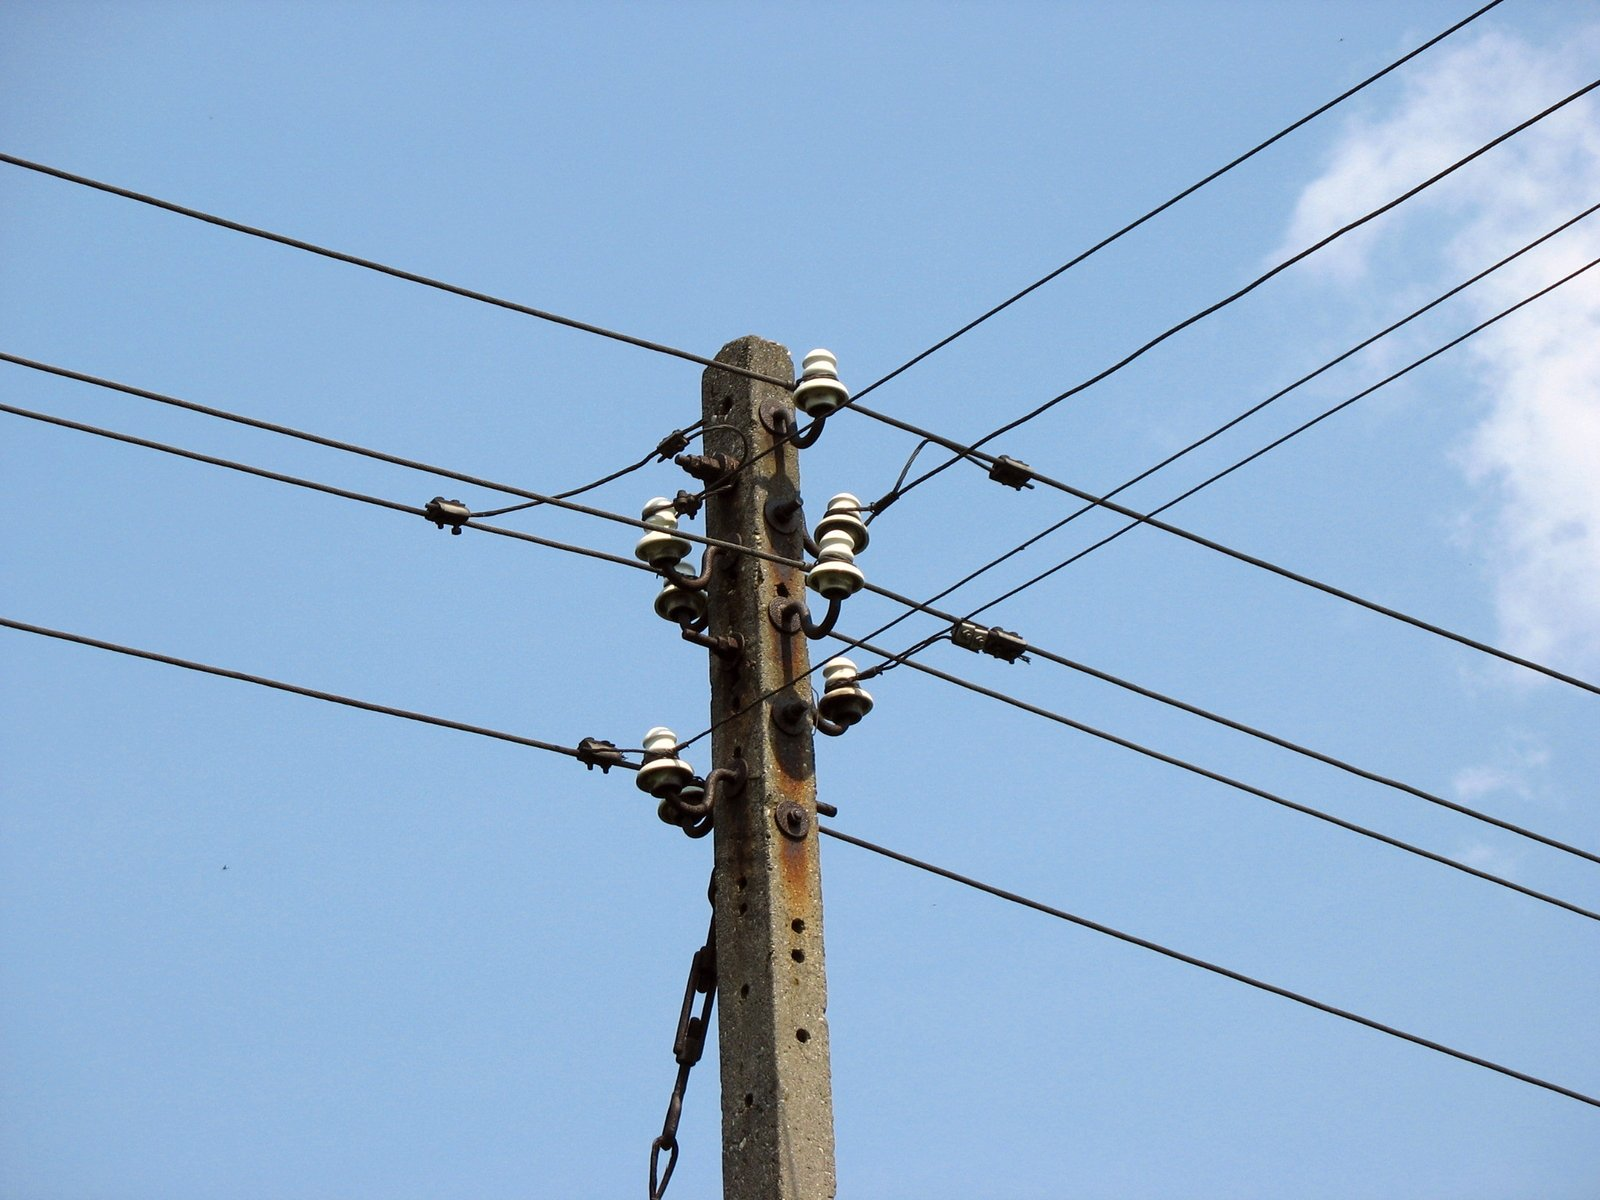 Free Old Electric Pole Stock Photo Freeimages Com